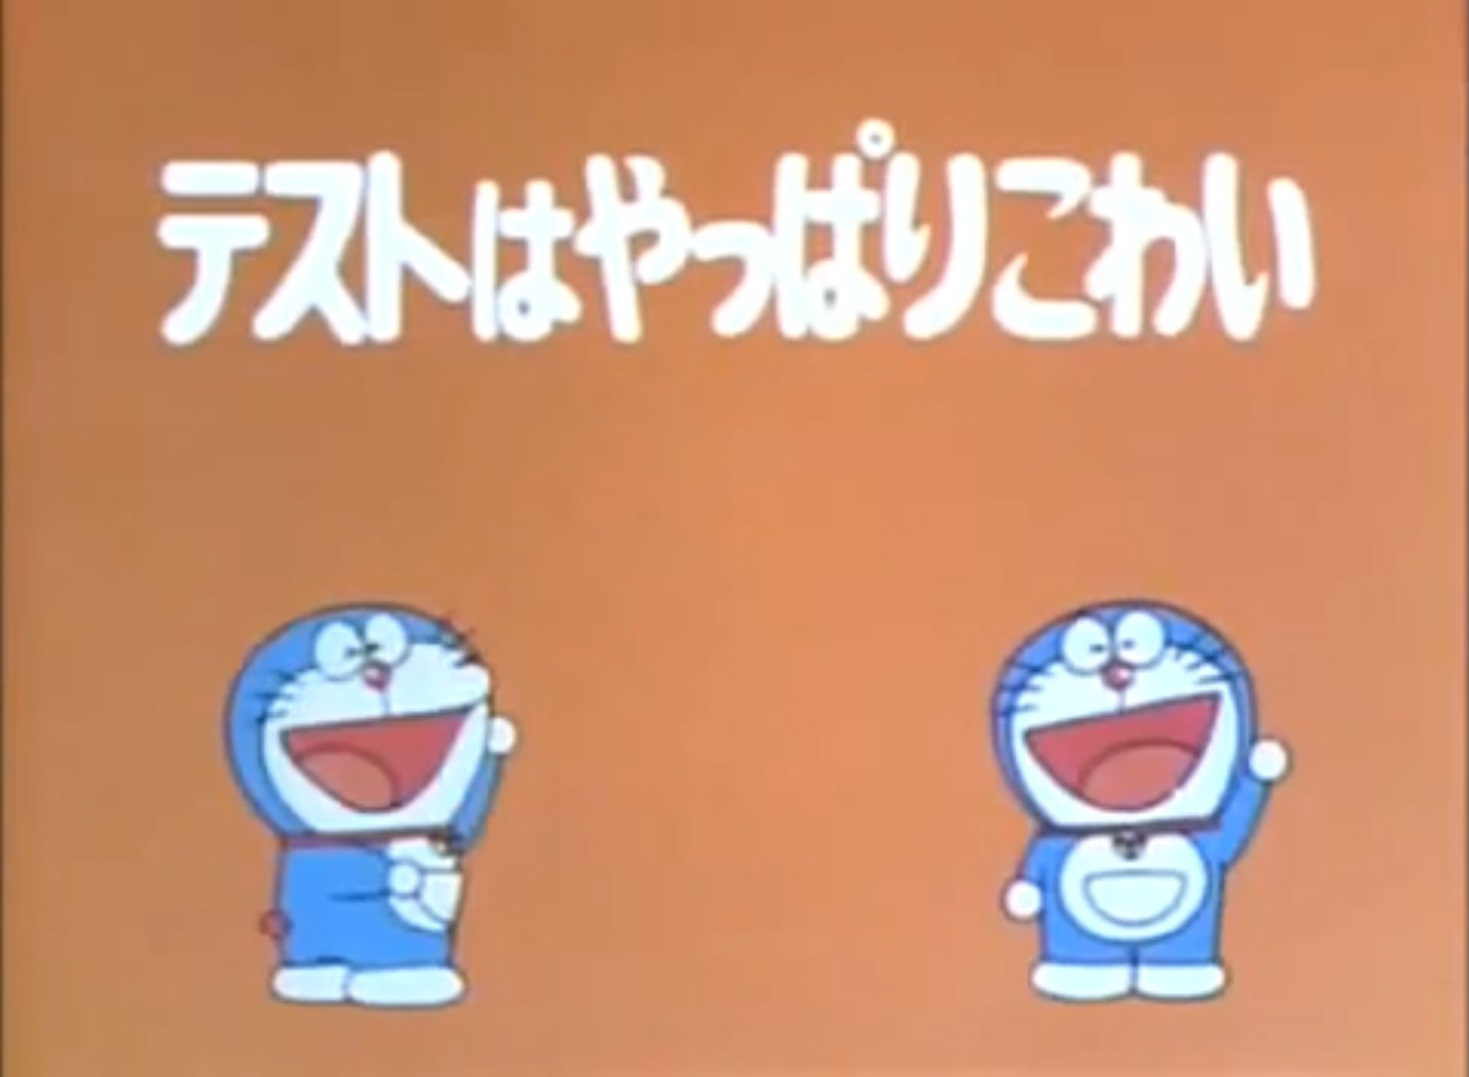 Big Trouble! Suneo's Test Result/1979 Anime